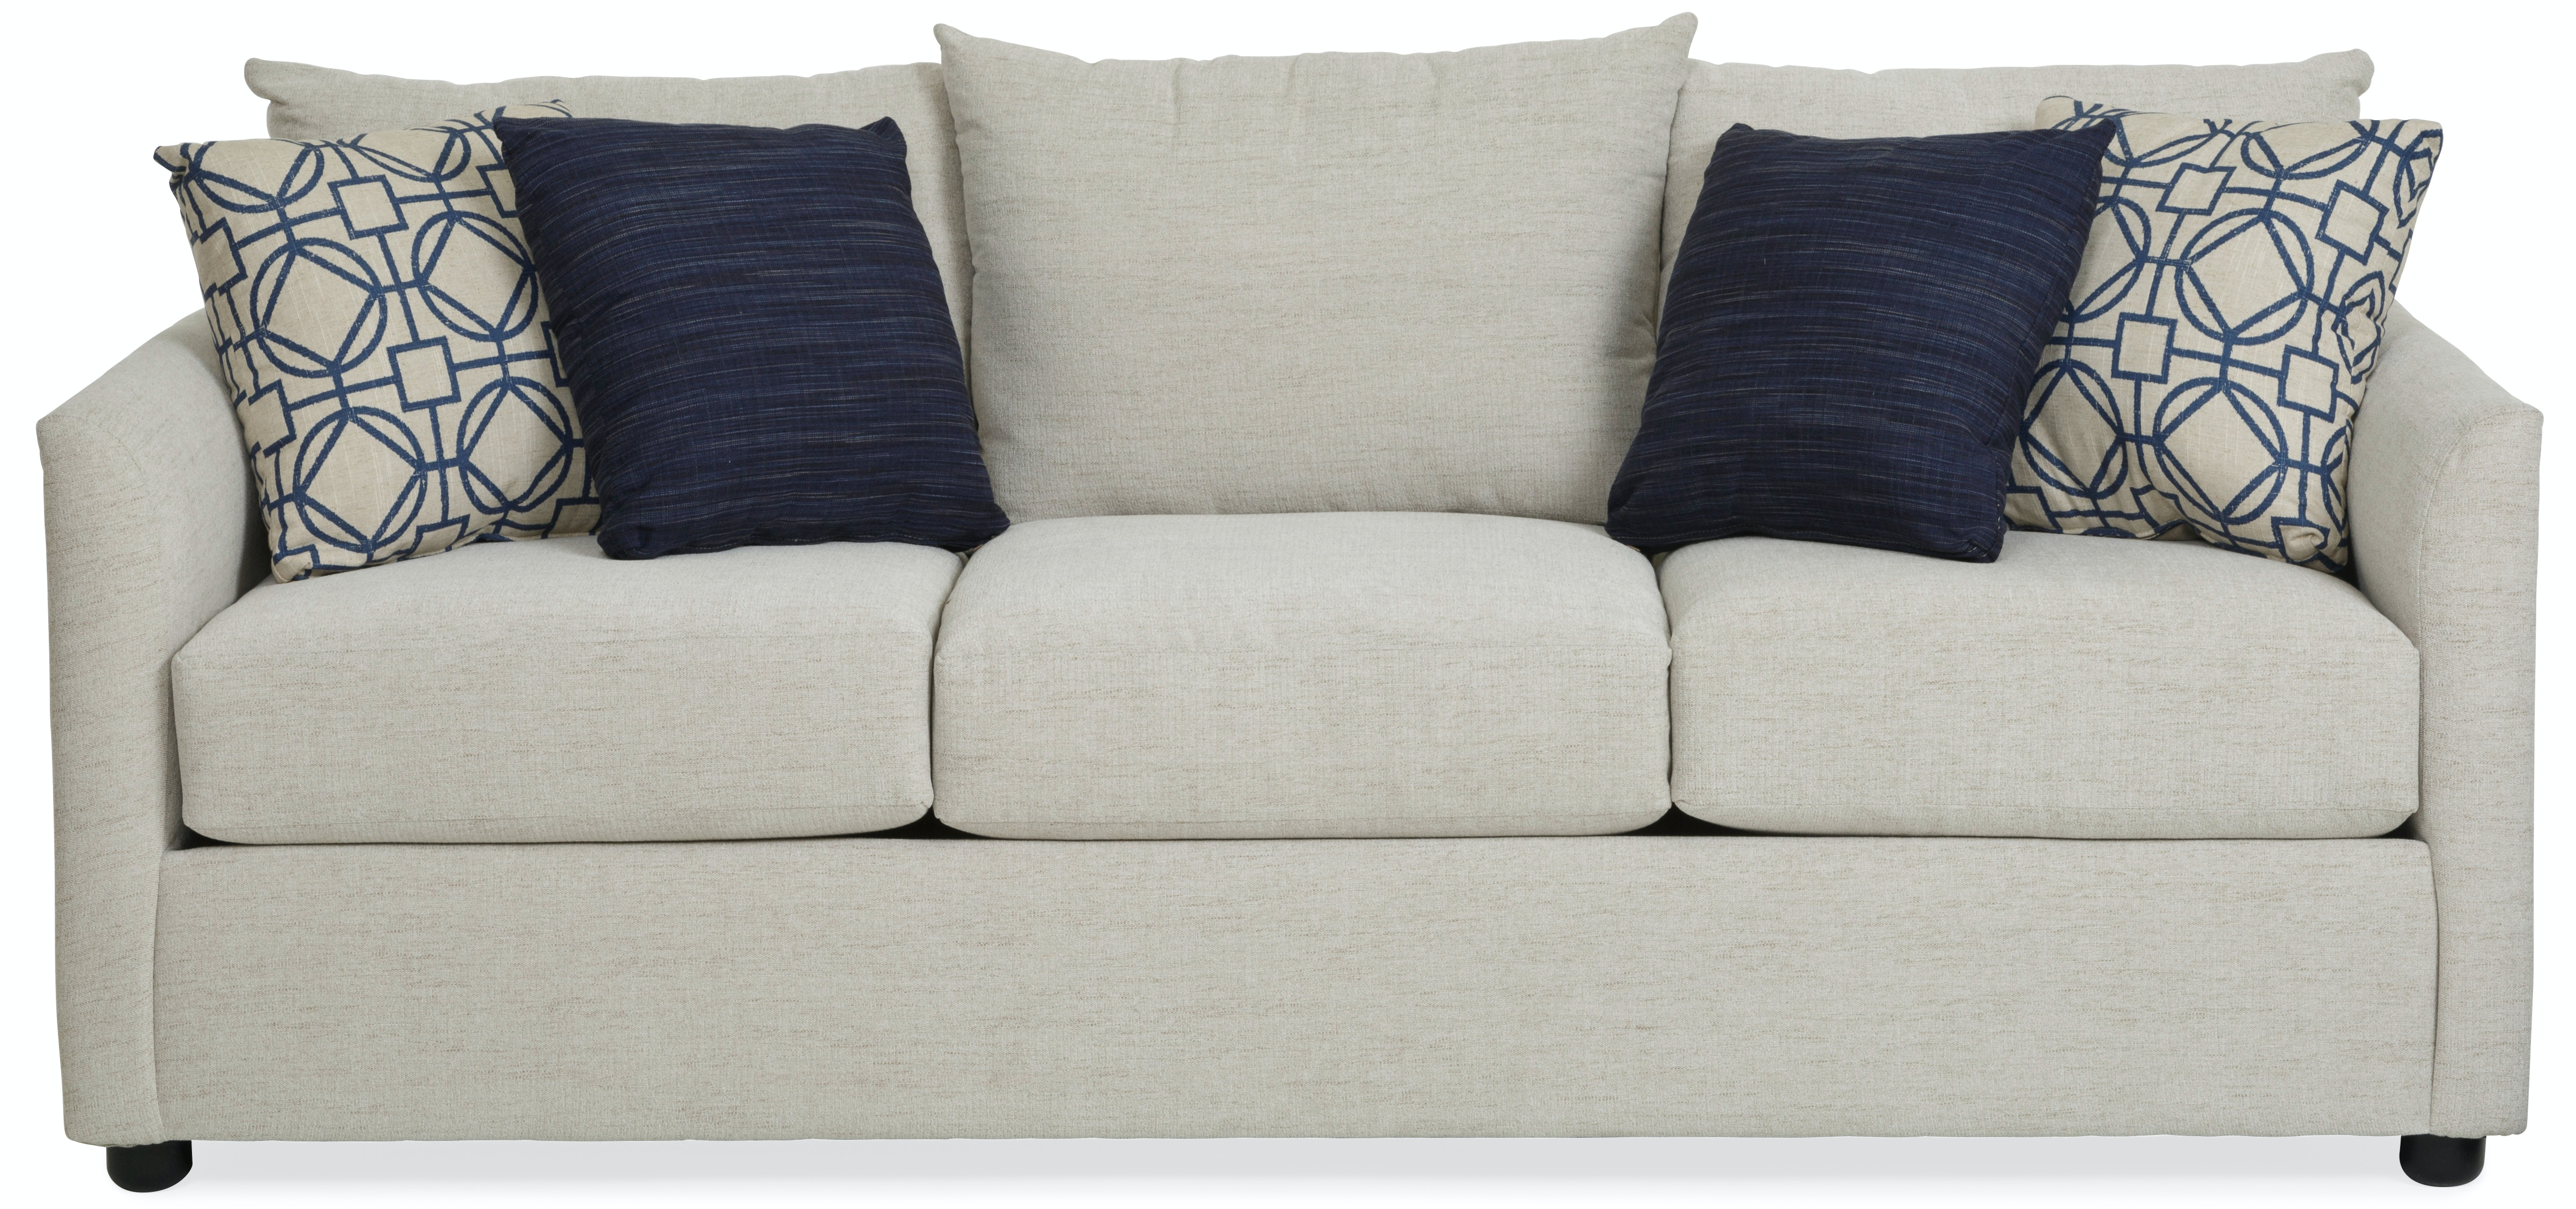 Great Trisha Yearwood   Atlanta Sofa ST:469196